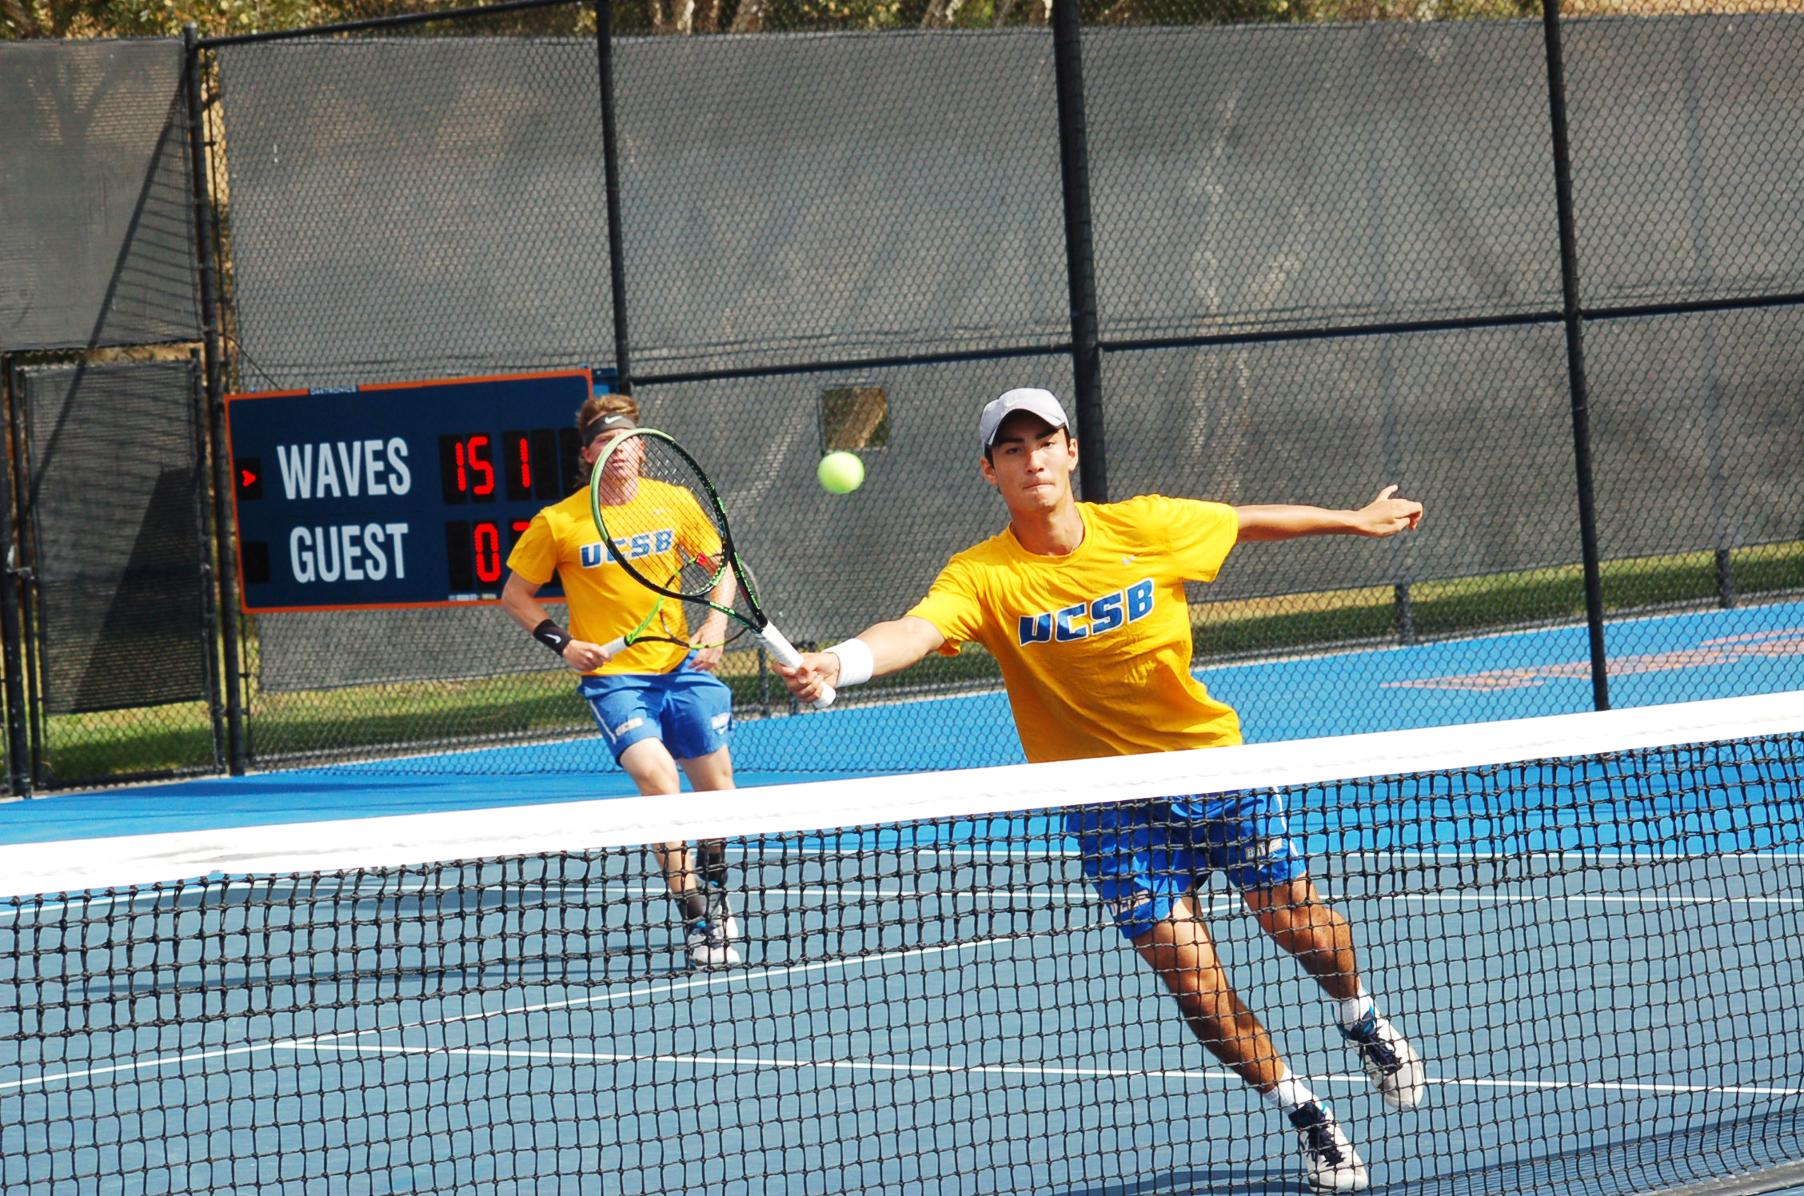 Simon Freund (right) and Morgan Mays (left) look to propel their team to victory this weekend against No. 95 USF and No. 6 Cal